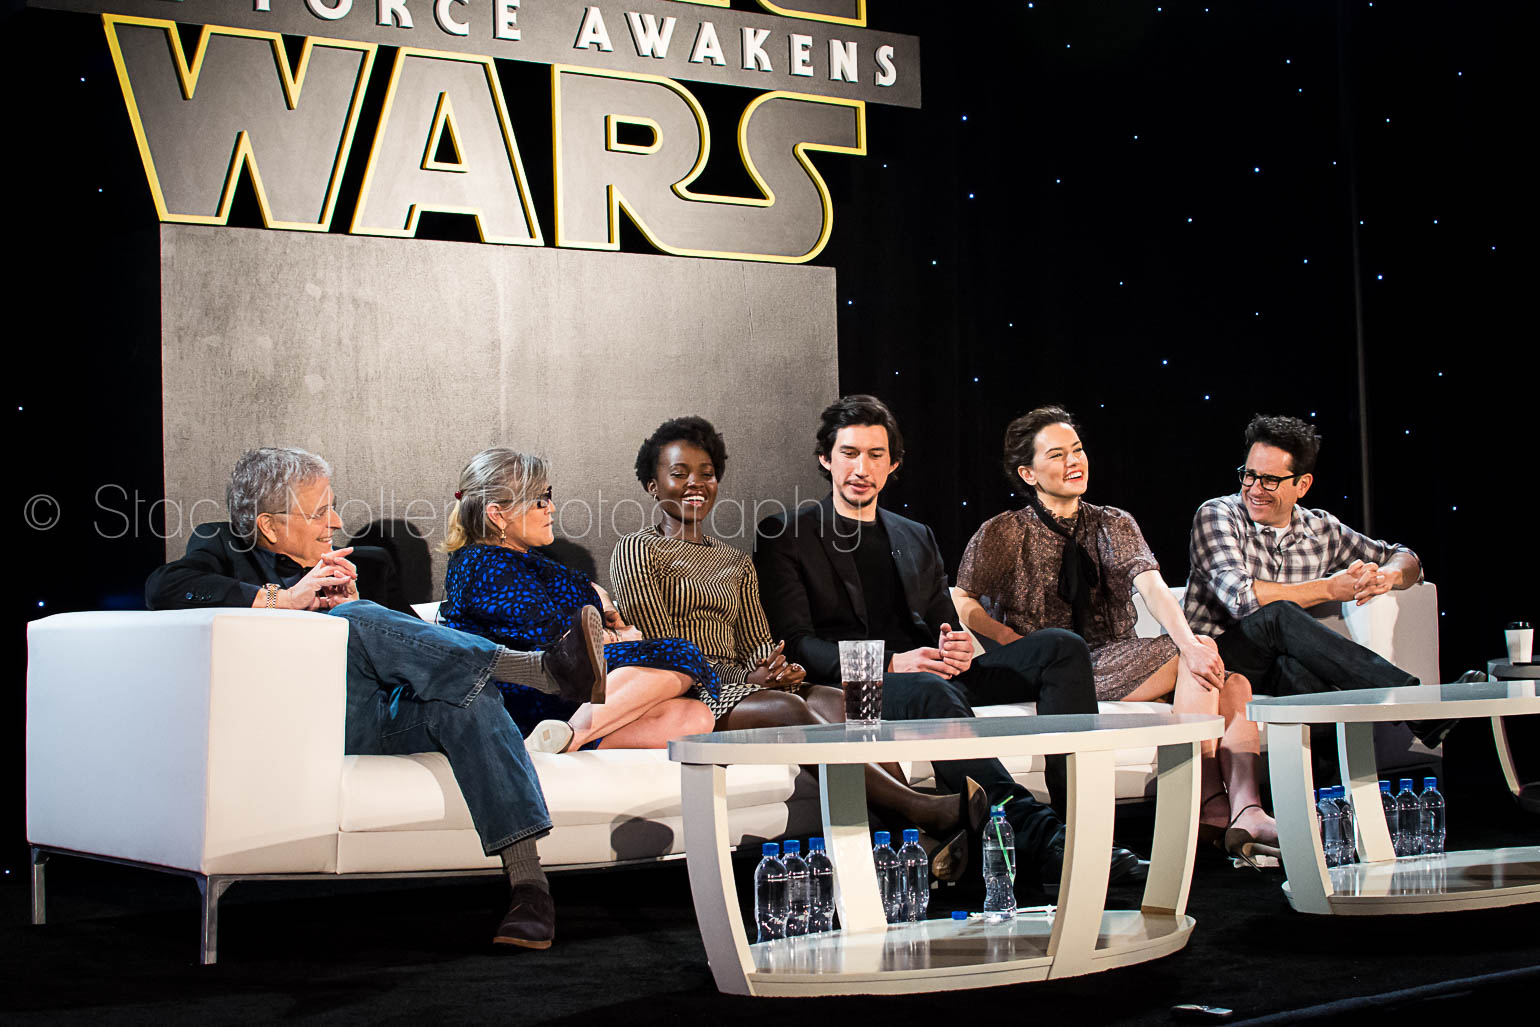 Carrie Fisher, JJ Abrams, Daisy Ridley, Adam Driver, Lupita Nyong'o, Lawrence Kasdan - Star Wars The Force Awakens Press Conference